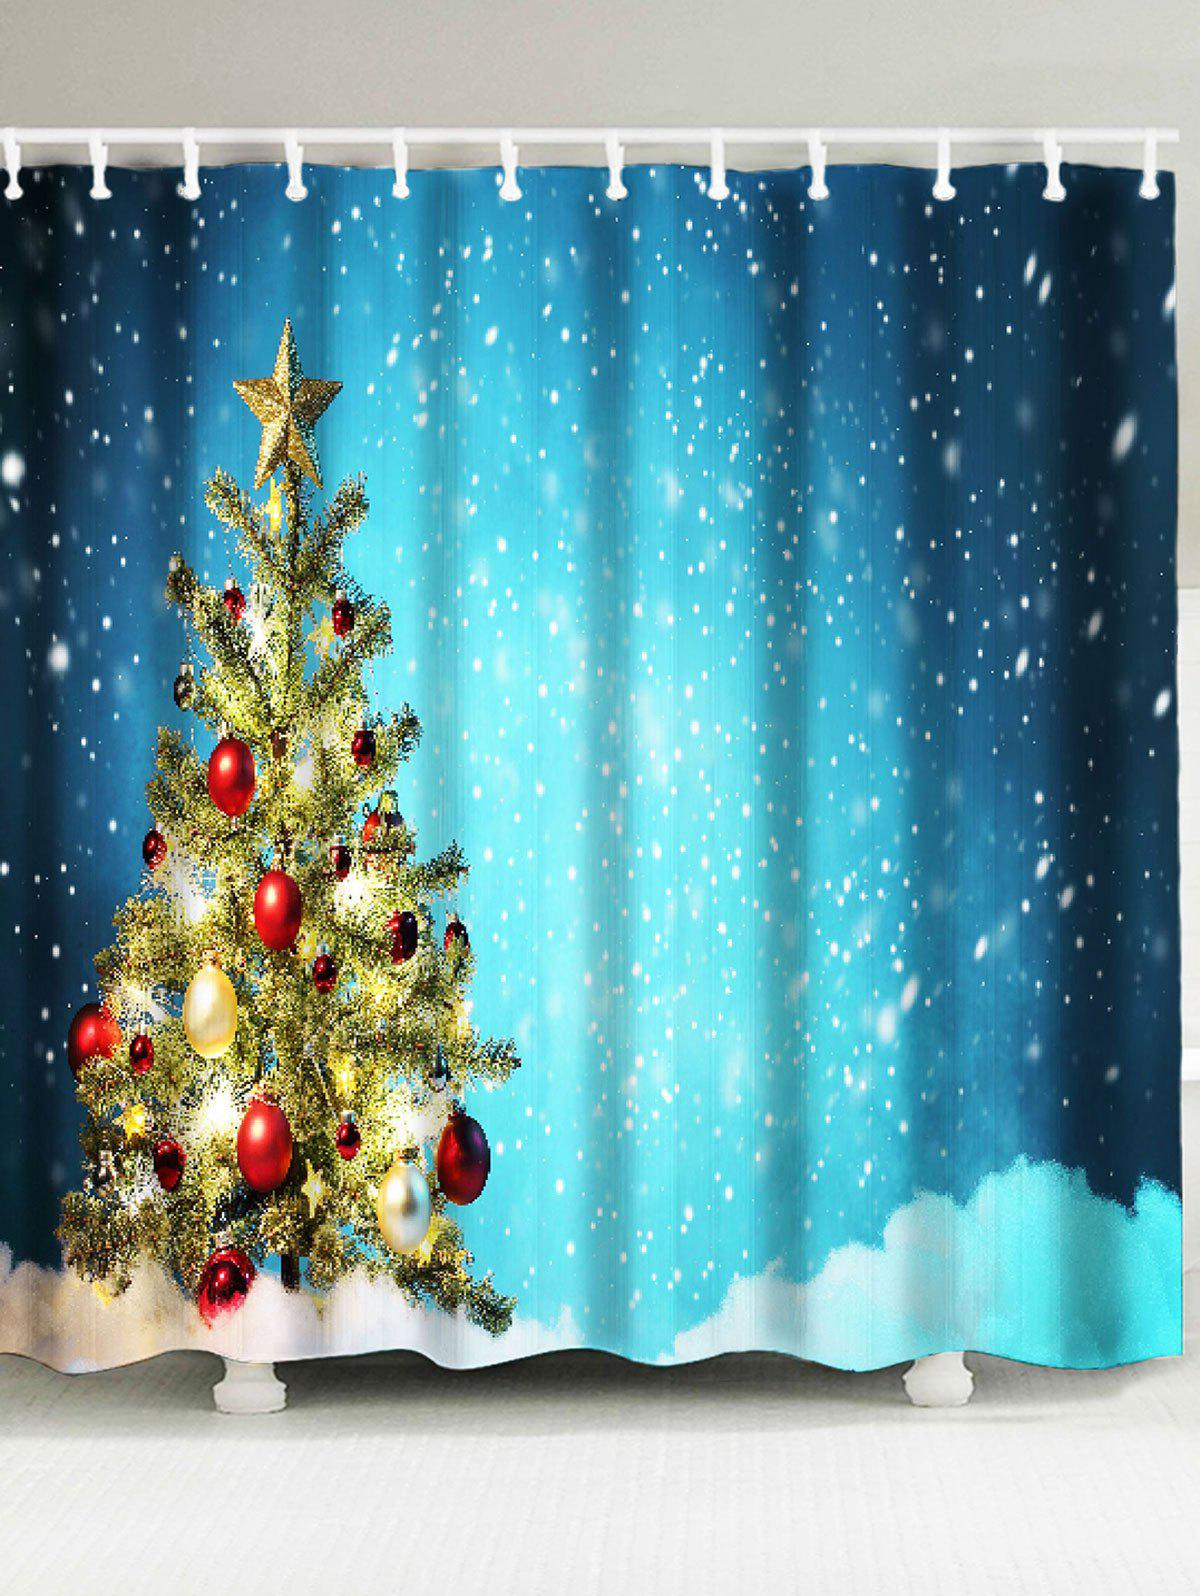 Snow Covering Christmas Tree Patterned Bath CurtainHOME<br><br>Size: W71 INCH * L79 INCH; Color: COLORFUL; Products Type: Shower Curtains; Materials: Polyester; Pattern: Christmas Tree,Snowflake; Style: Festival; Number of Hook Holes: W59 inch * L71 inch:10, W65 inch * L71 inch:12, W71 inch * L71 inch:12, W71 inch * L79 inch:12, W79 inch * L71 inch:12; Package Contents: 1 x Shower Curtain 1 x Hooks (Set);